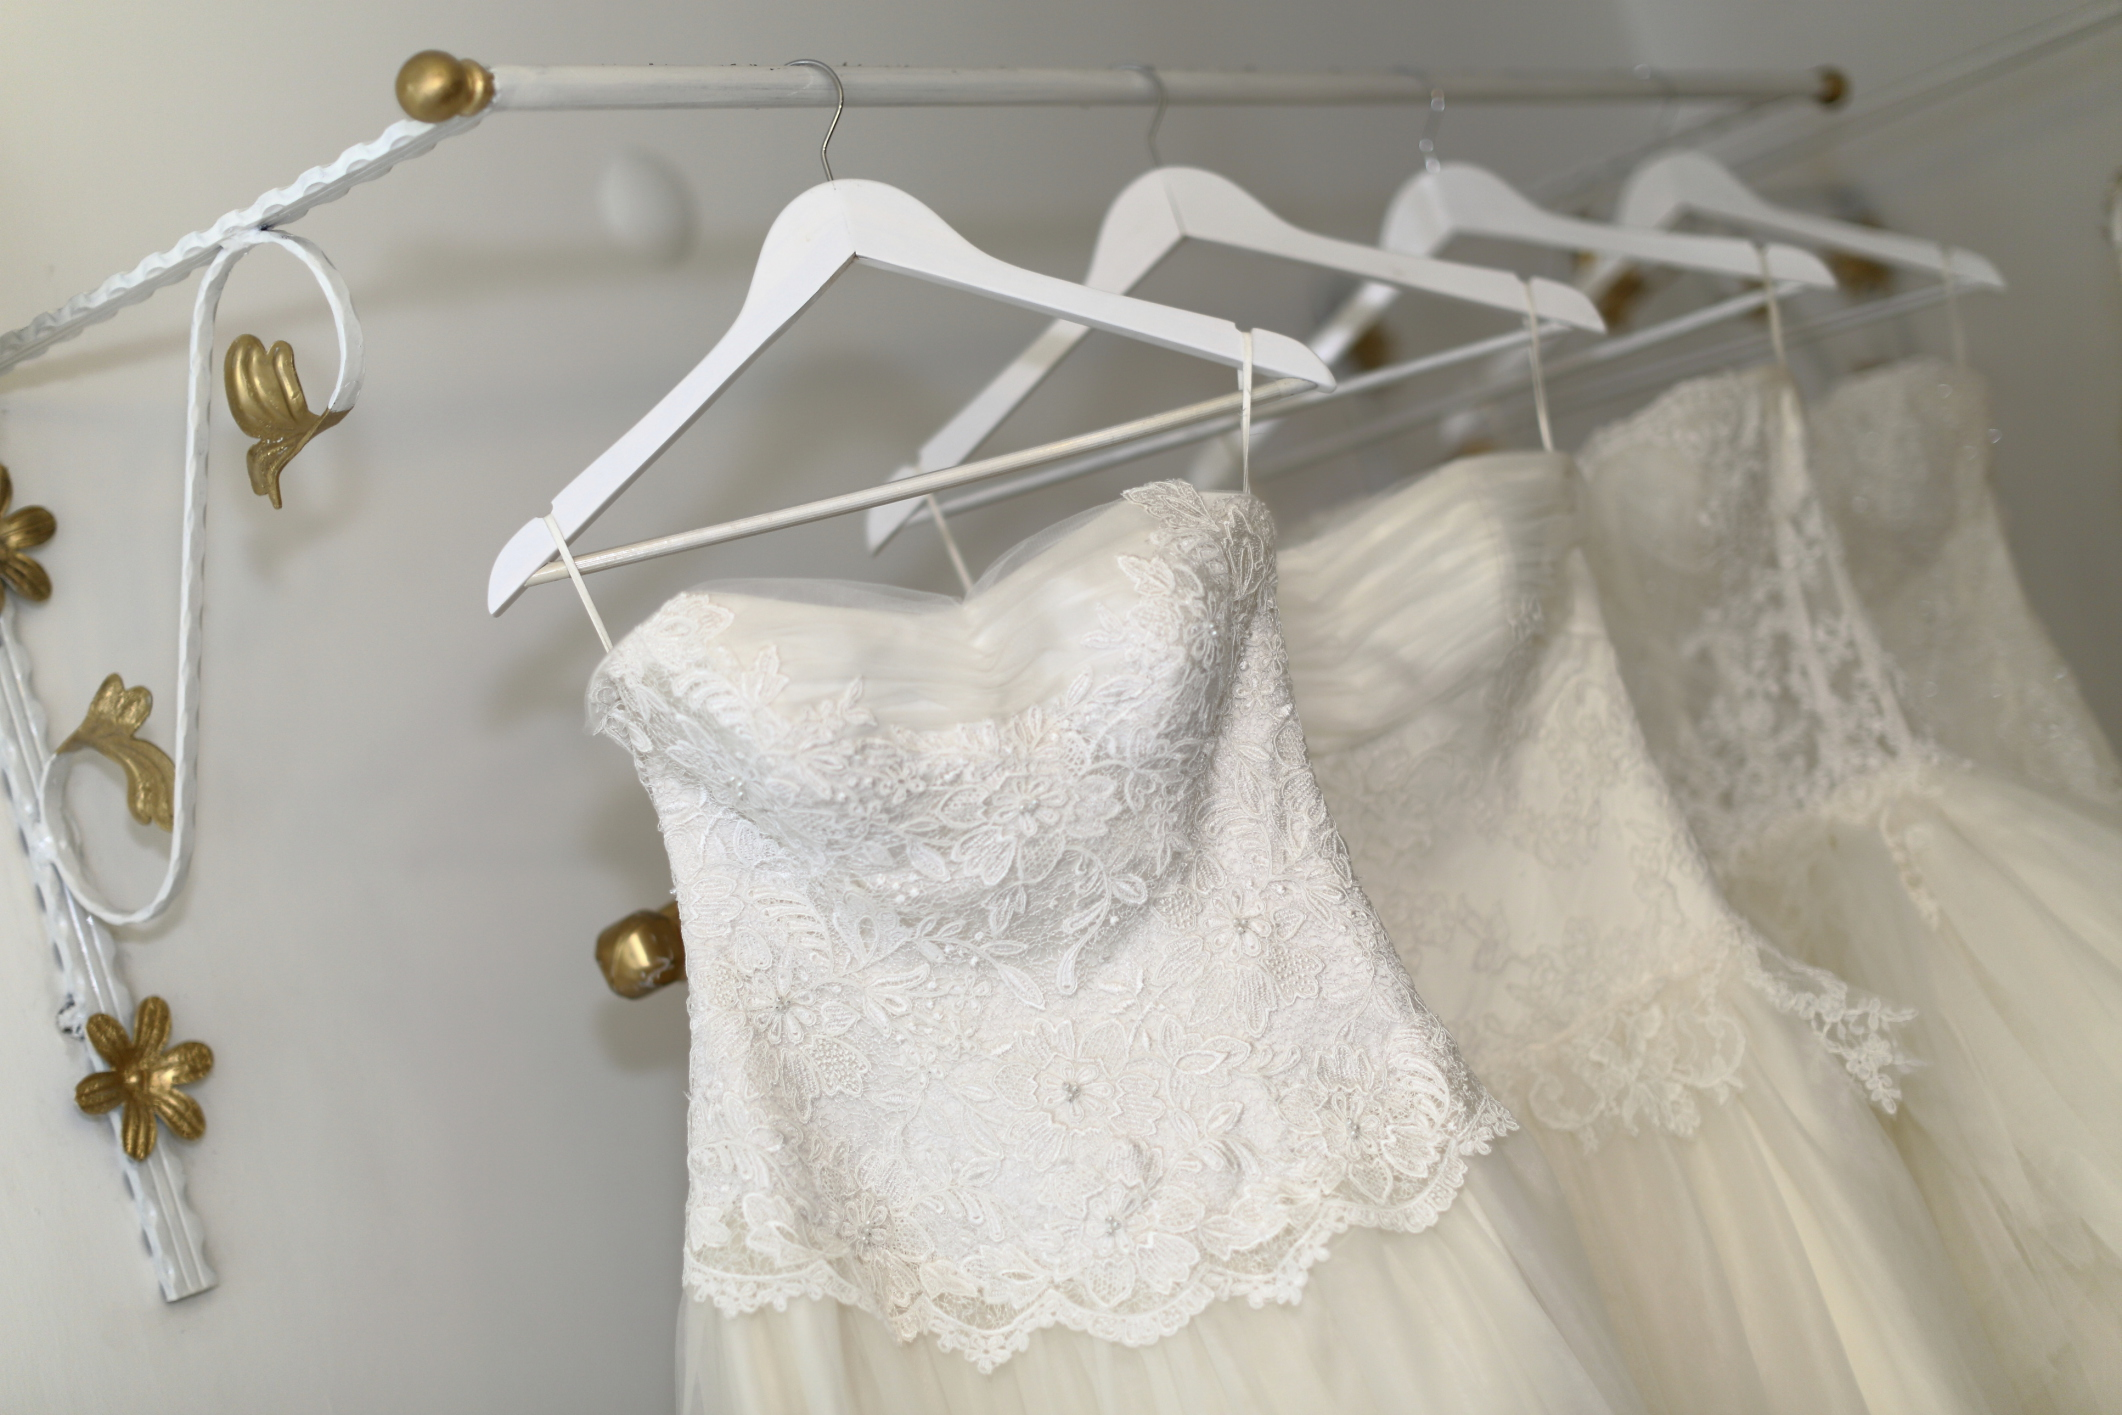 Selling your wedding dress - Articles - Easy Weddings